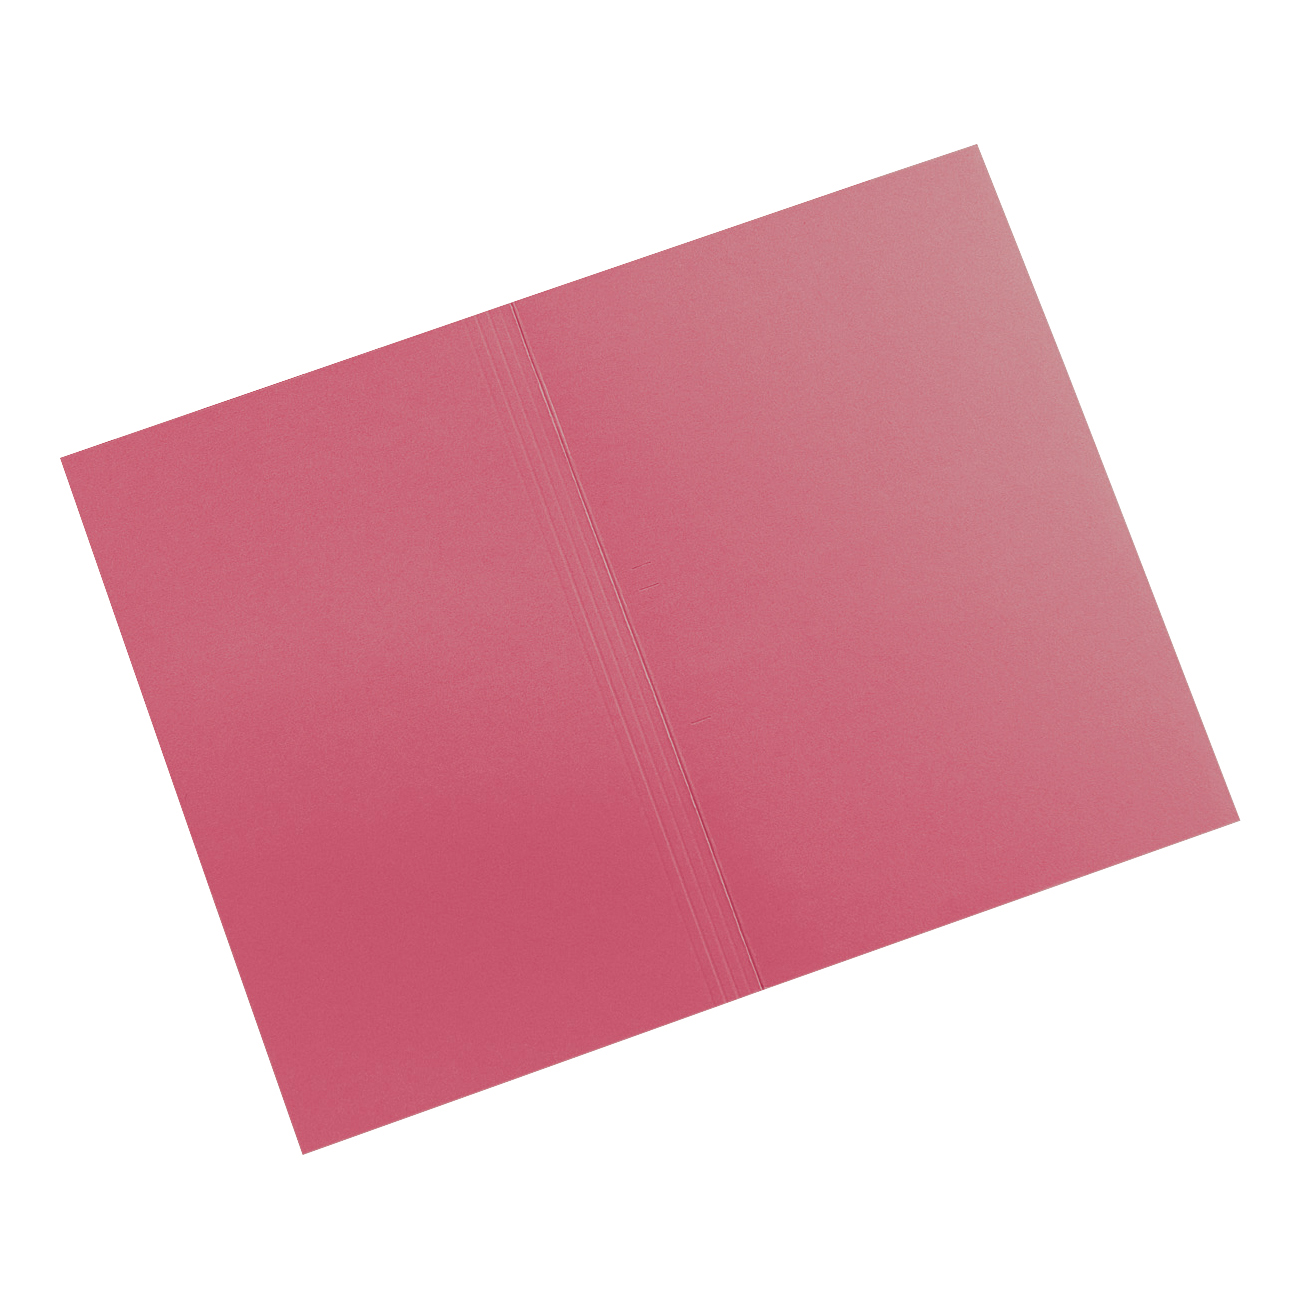 Square Cut Folders 5 Star Elite Square Cut Folders 315gsm Heavyweight Manilla Foolscap Red Pack 100